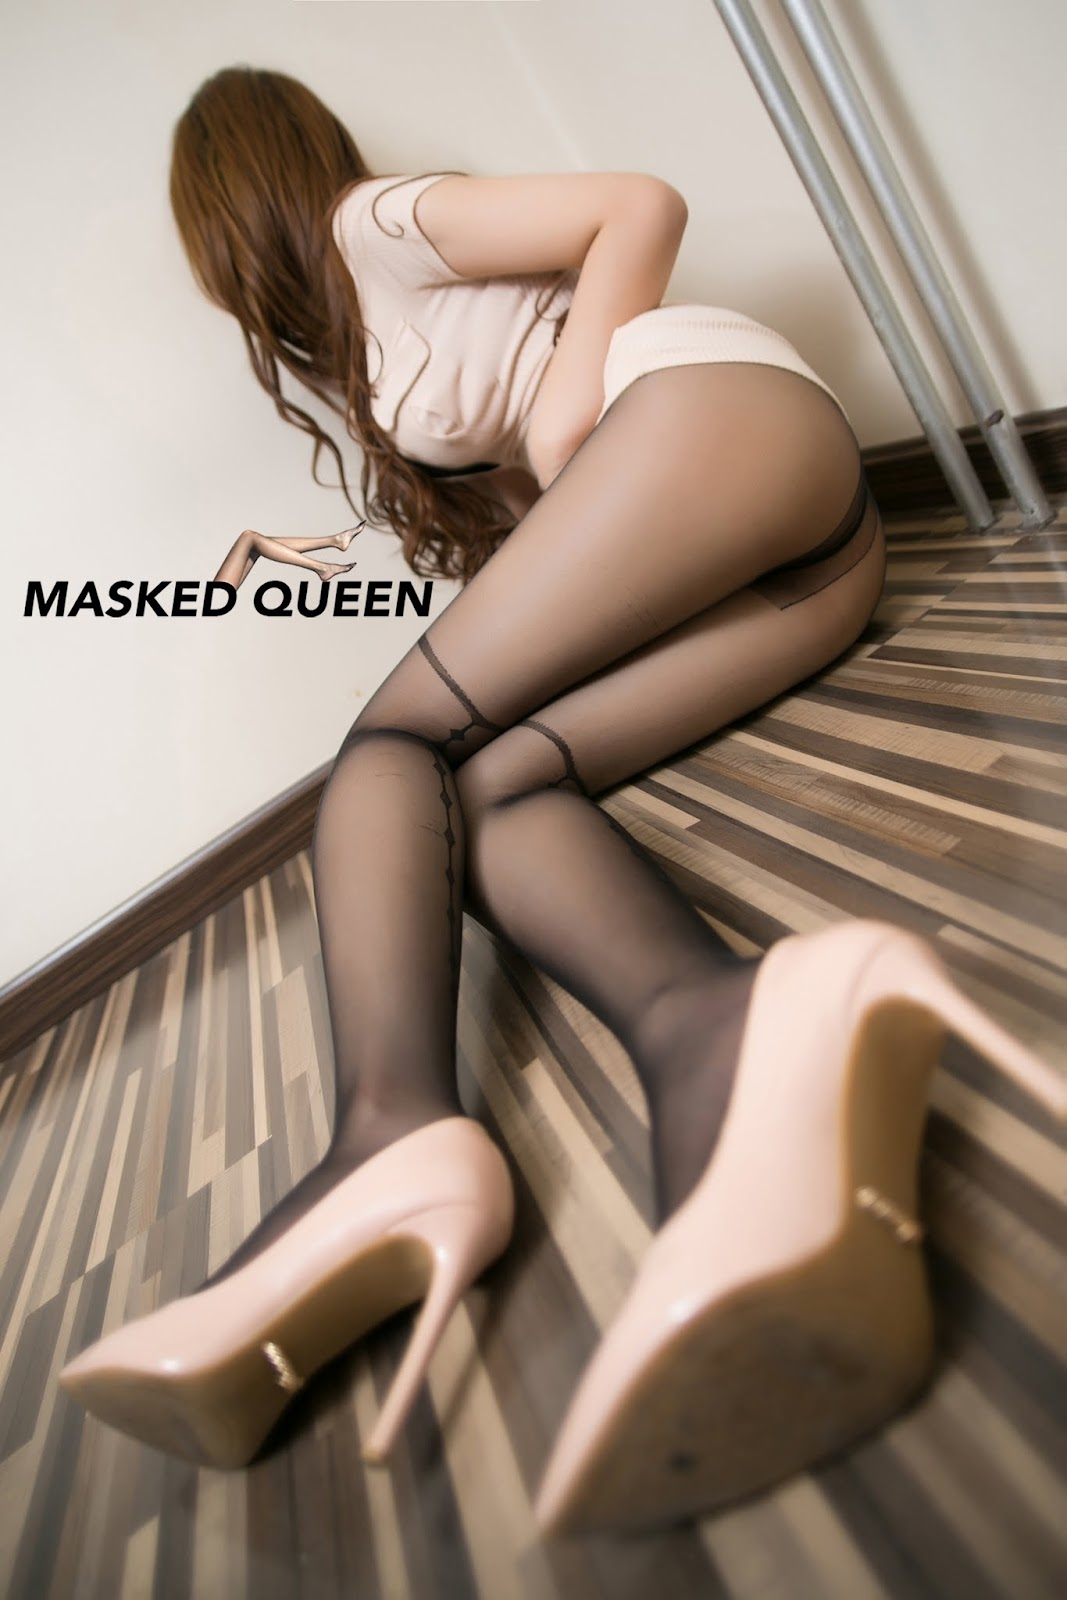 12 - Hot And Sexy Model From MASKED QUEEN NO.18